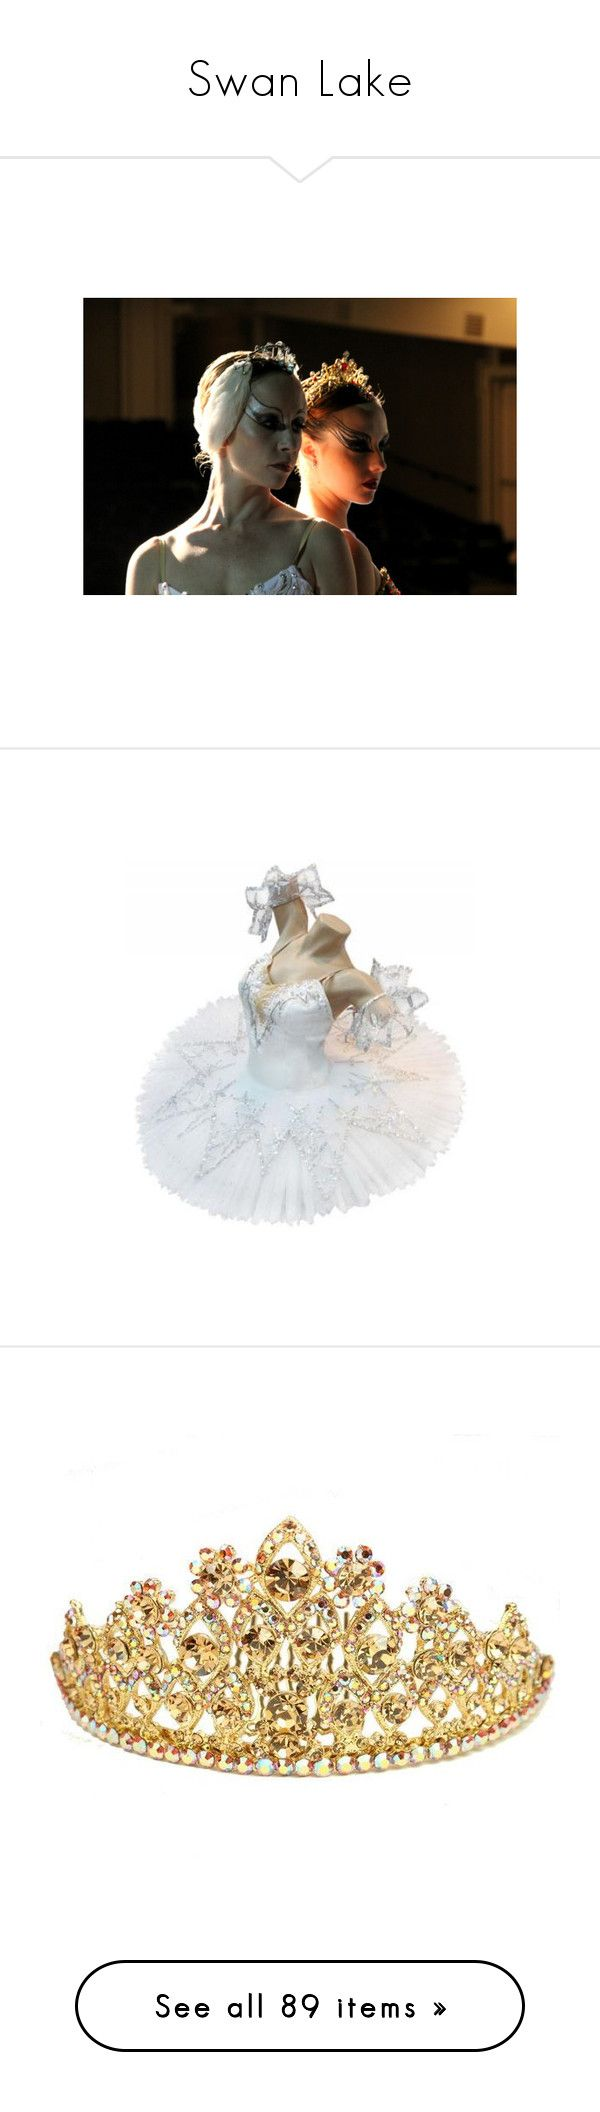 """""""Swan Lake"""" by glamgore ❤ liked on Polyvore featuring dance, costumes, ballet, dresses, tutu, backgrounds, ballet halloween costumes, ballerina costume, ballet costumes and ballerina halloween costume"""